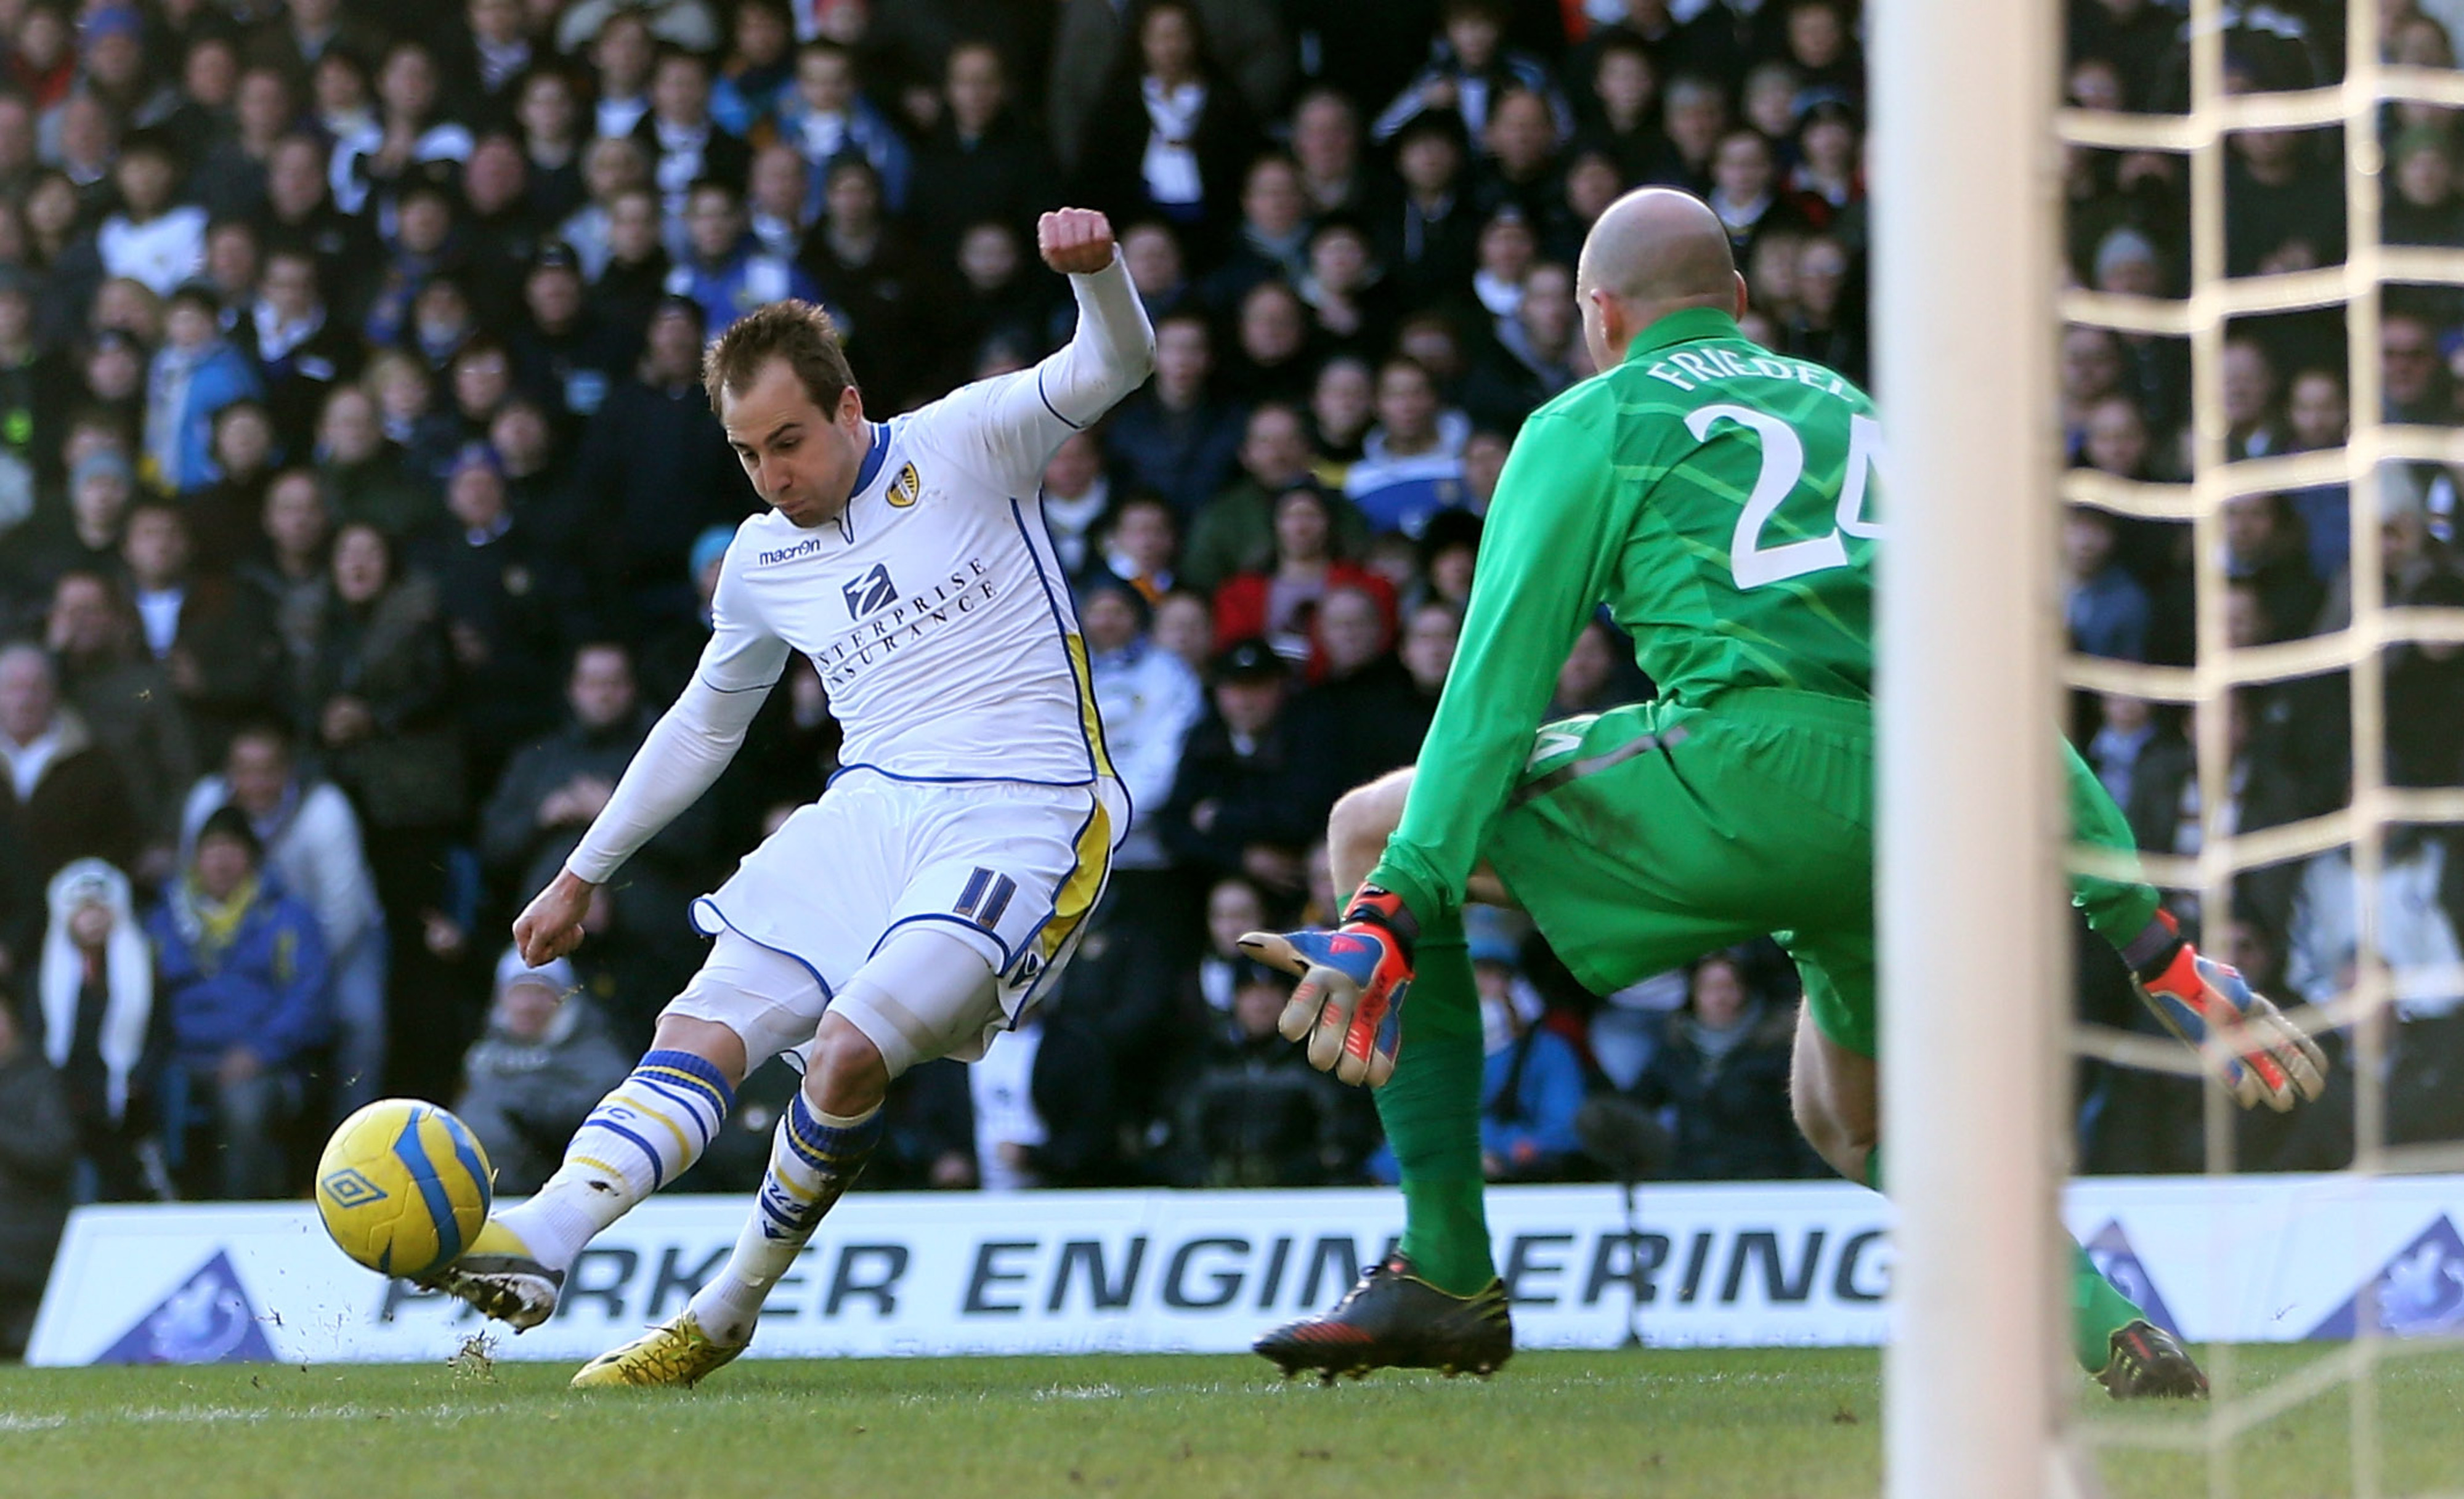 Luke Varney bagged two headers as United came from behind to win 2-1 at Elland Road.